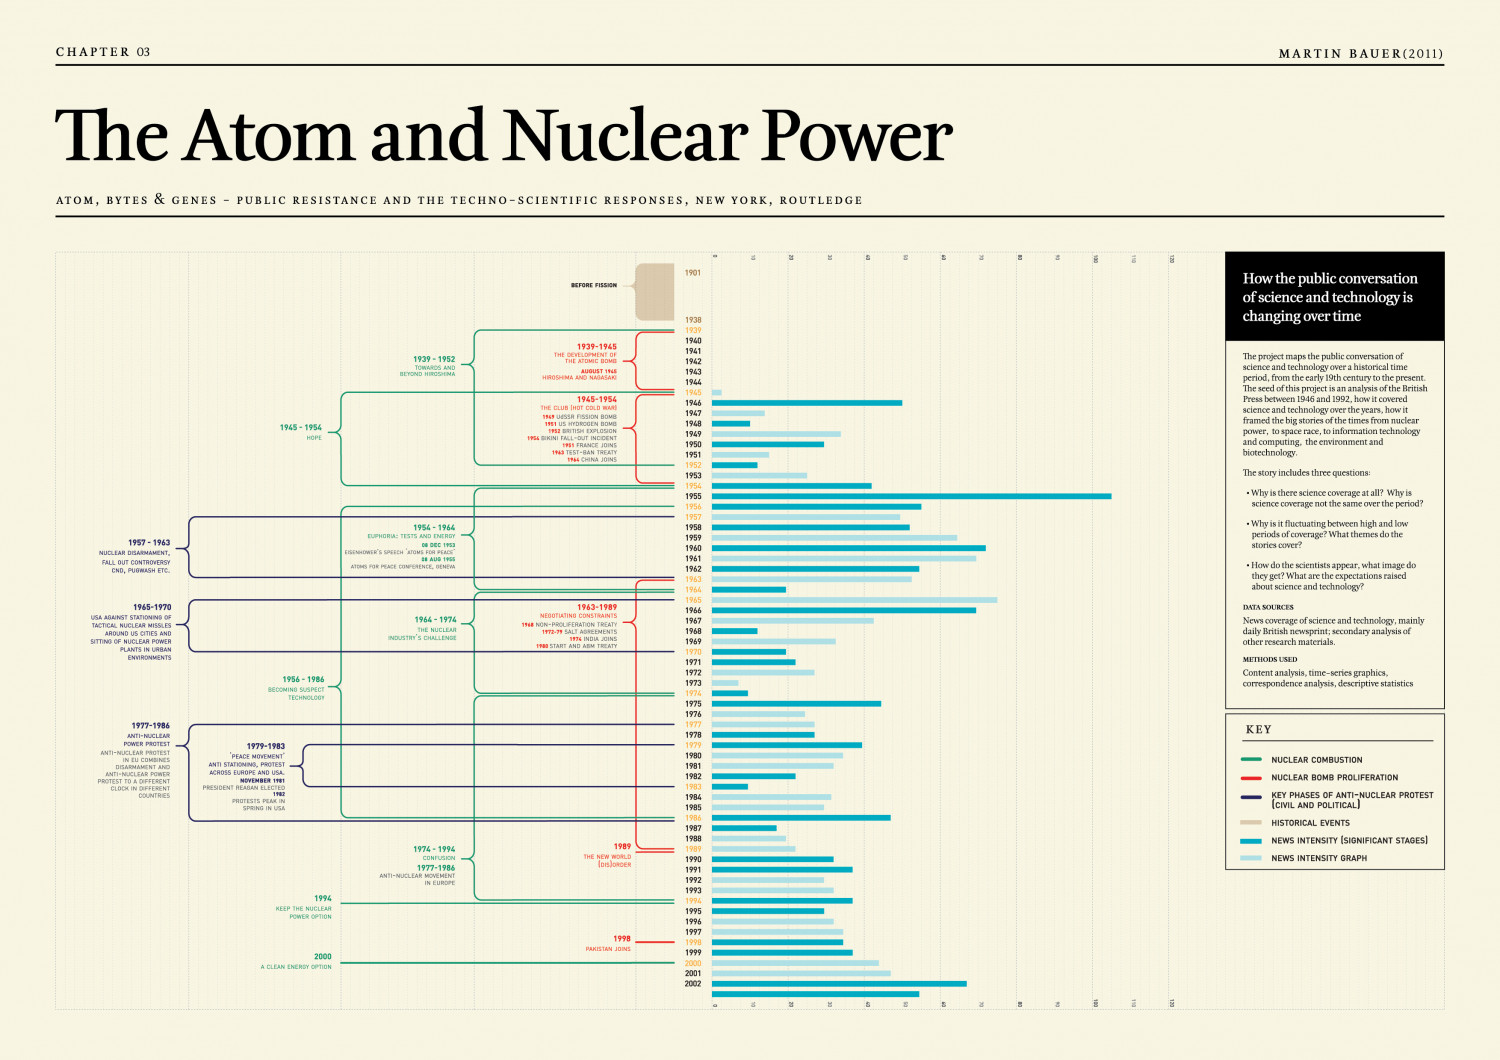 The Atom and Nuclear power Infographic